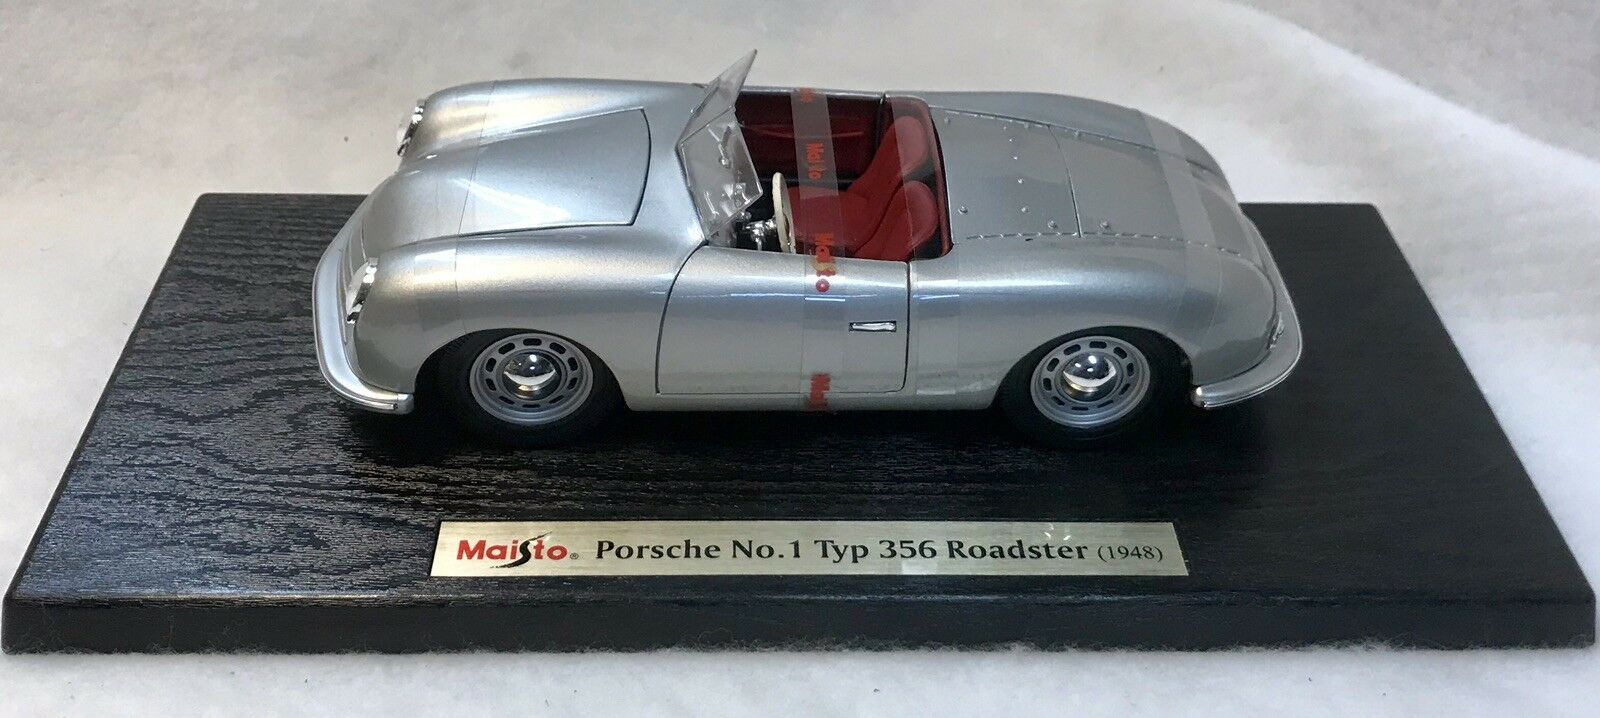 Maisto 1948 Porsche No. 1 Type 356 Roadster 1 24 Scale Special Edition